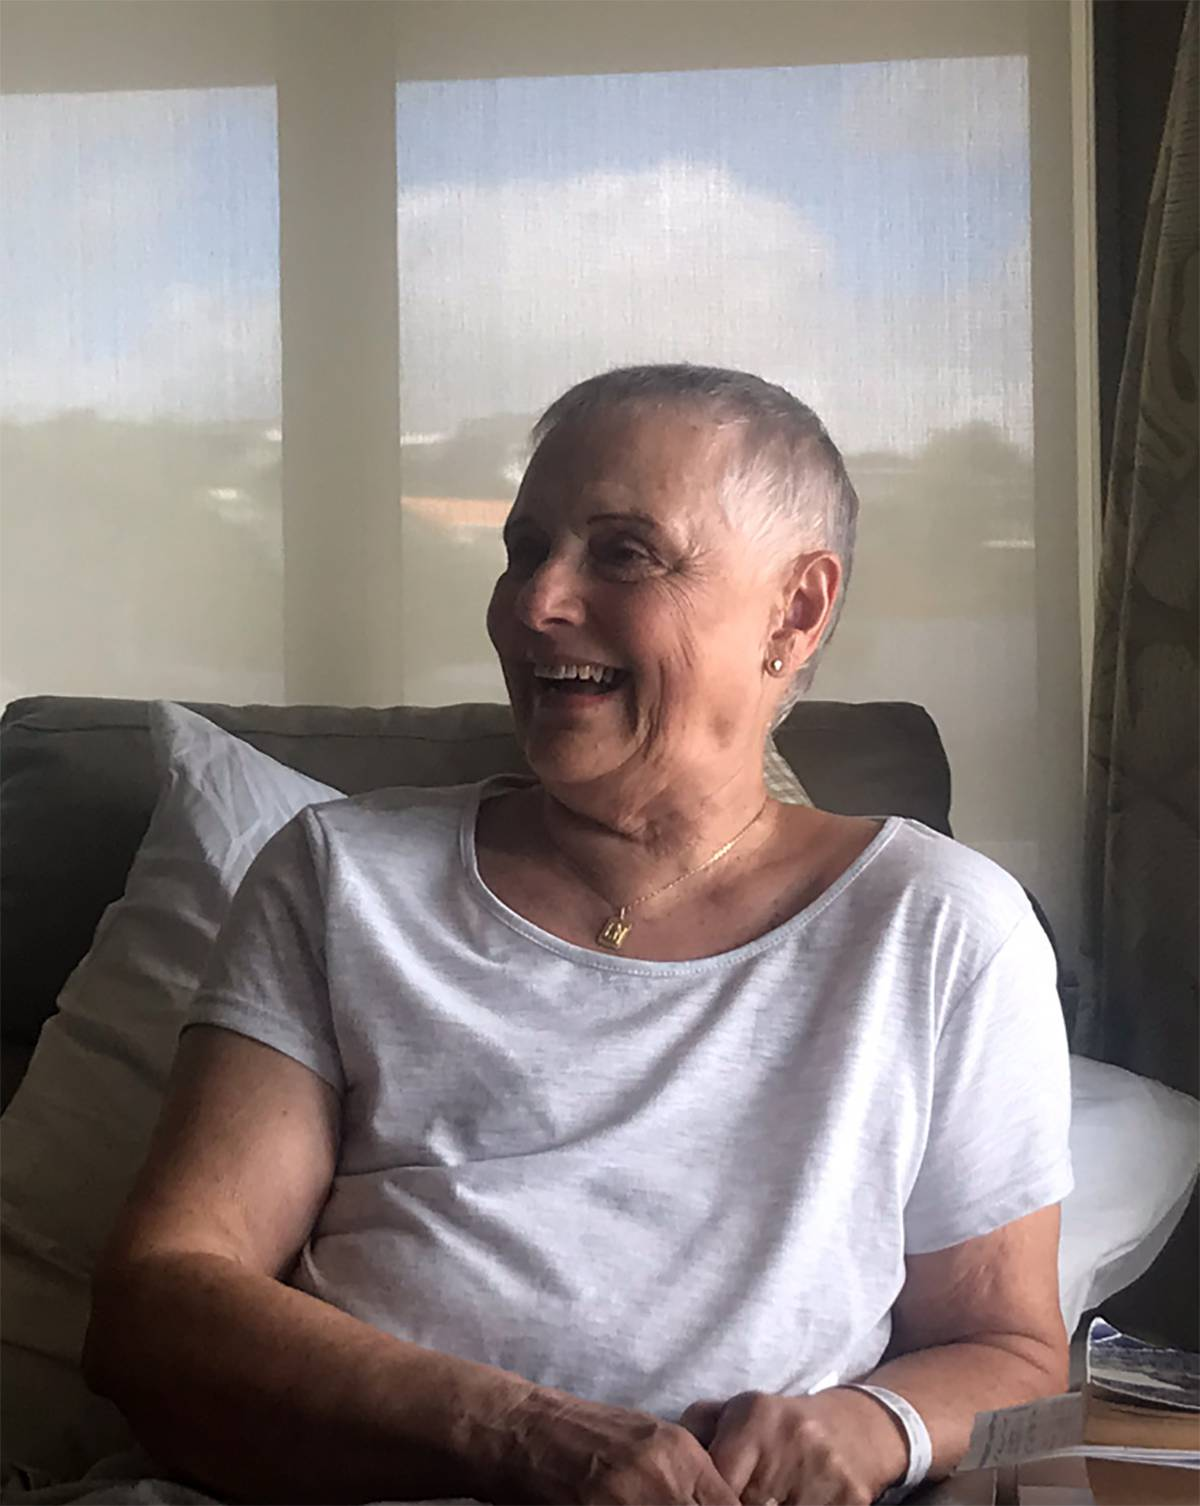 Terminal Hospice breast-cancer patient: 'It's the fear of the unknown'